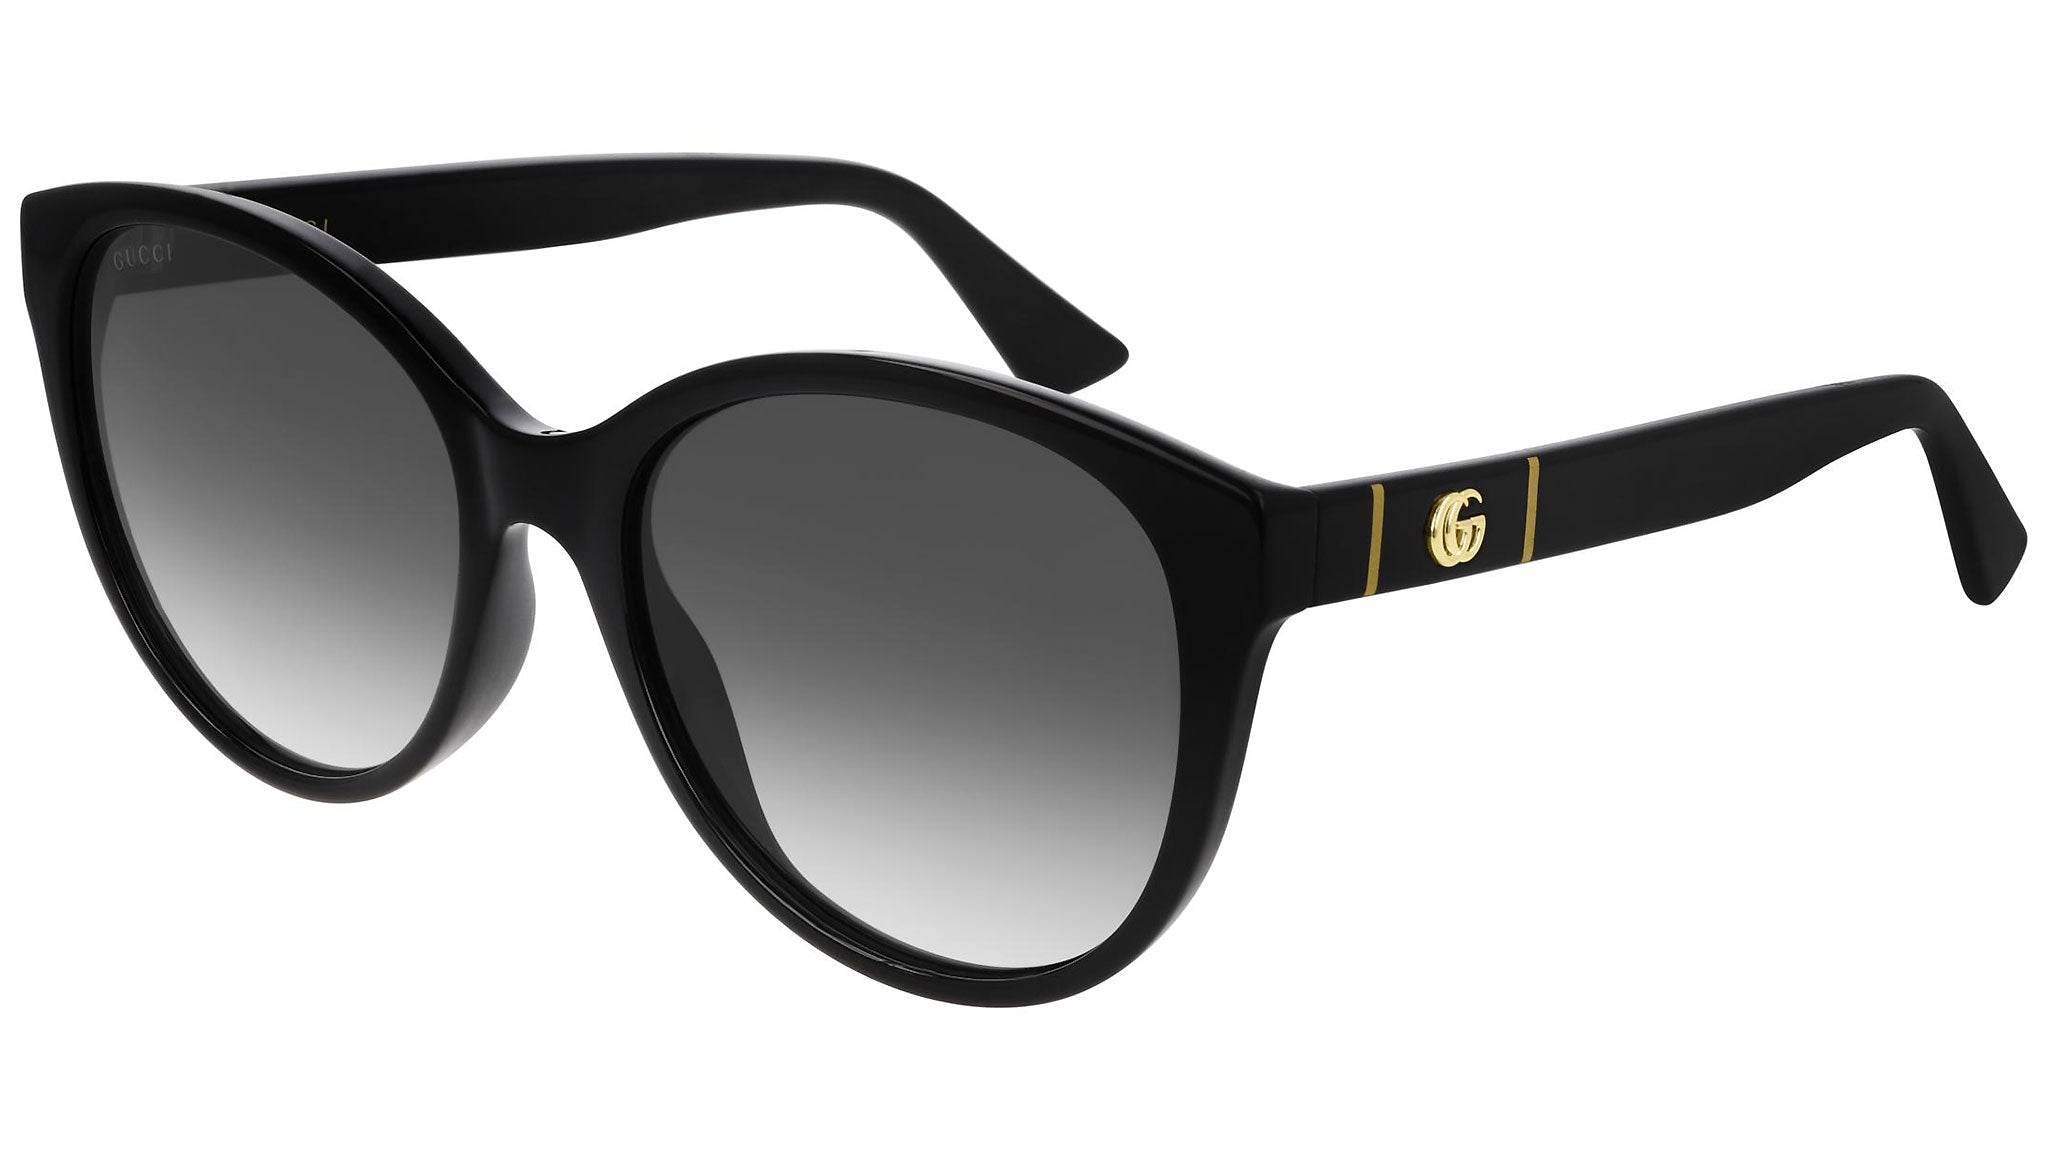 GG0631S shiny black and grey